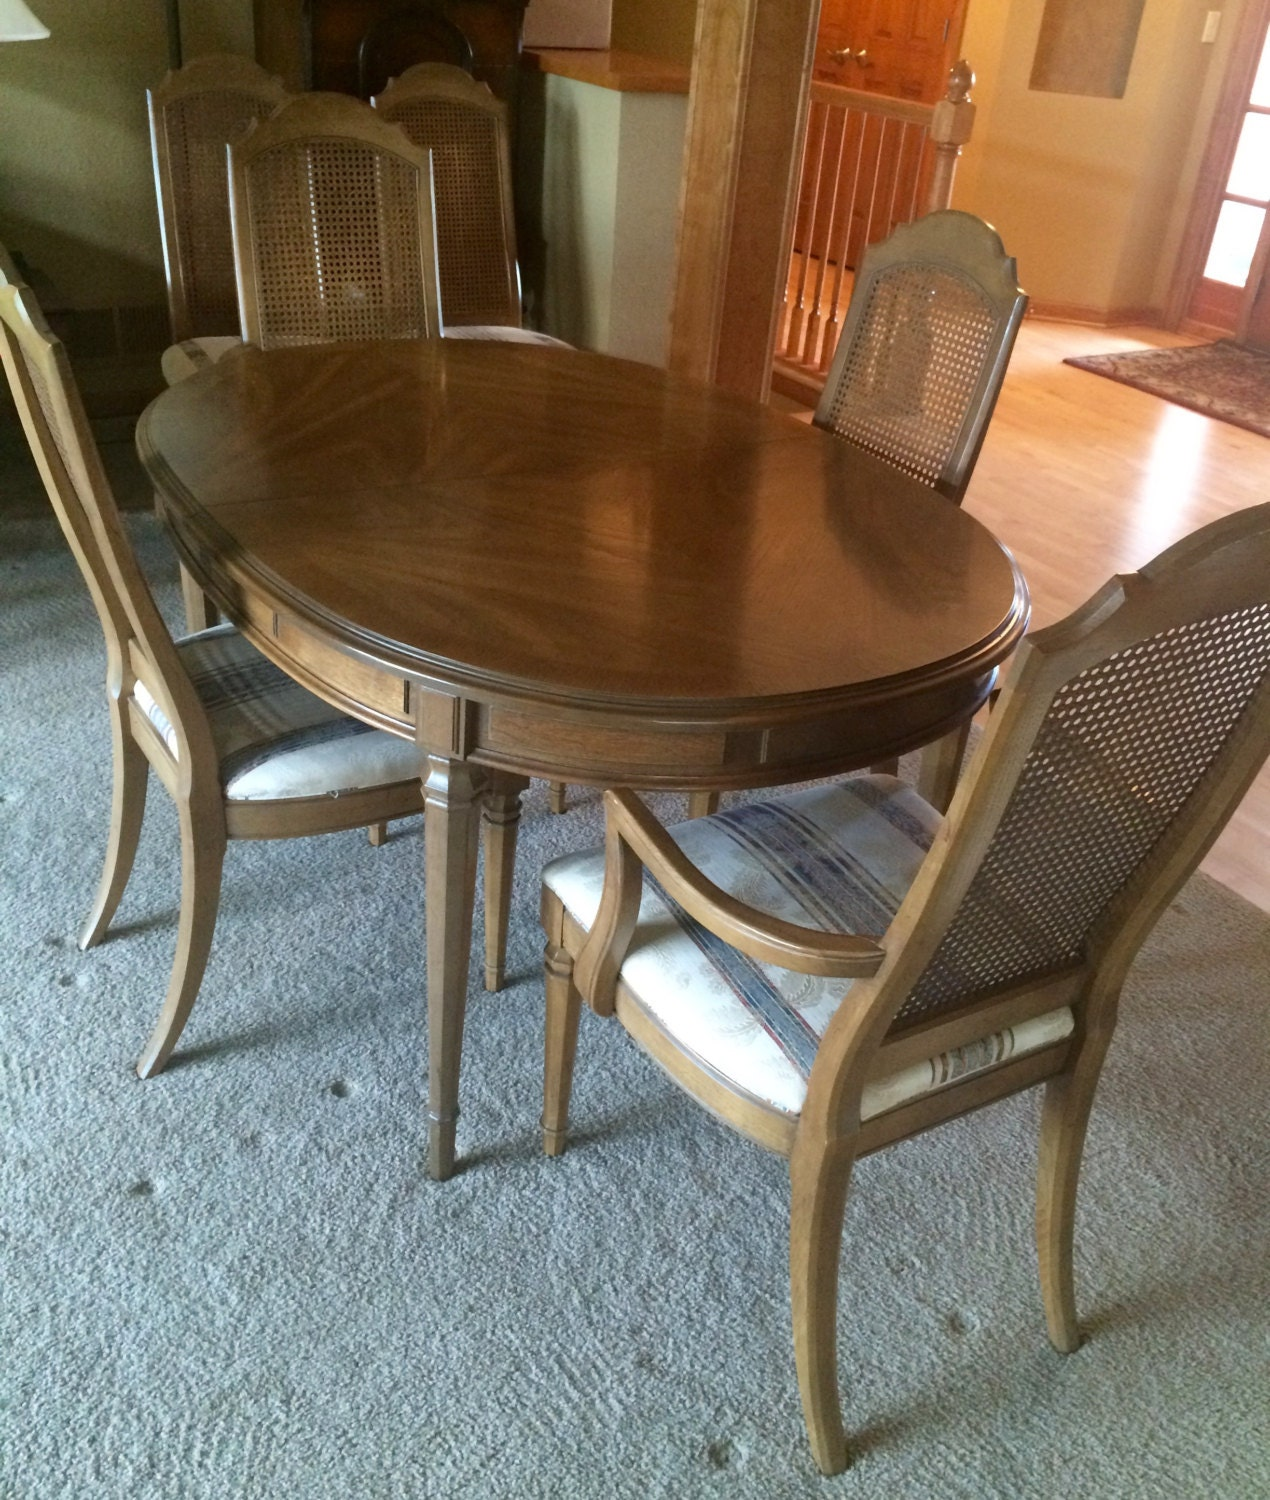 Drexel Dining Room Set